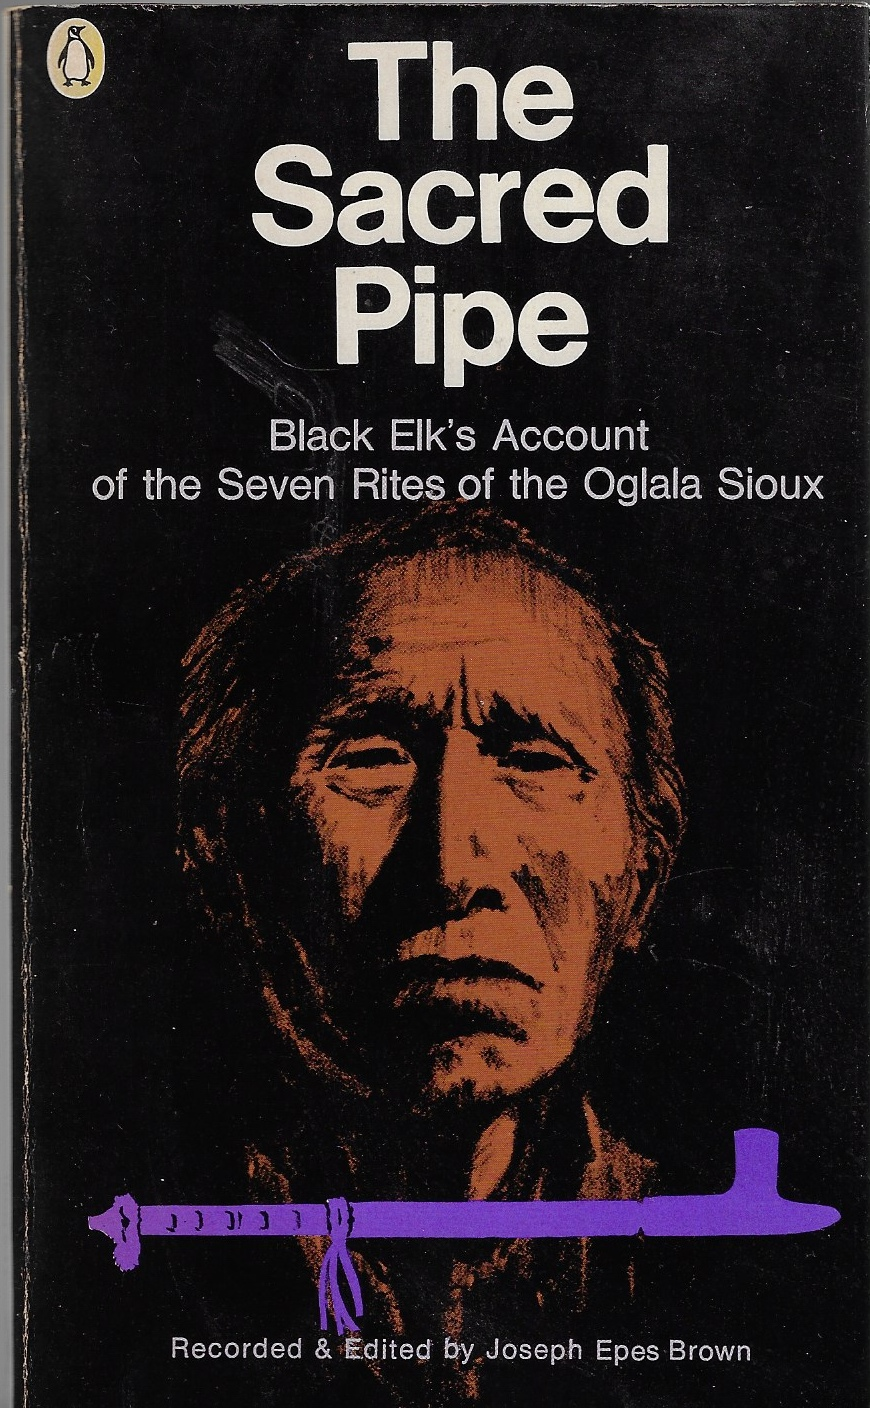 Image for The Sacred Pipe Black Elk's Account of the Seven Rites of the Oglala Sioux